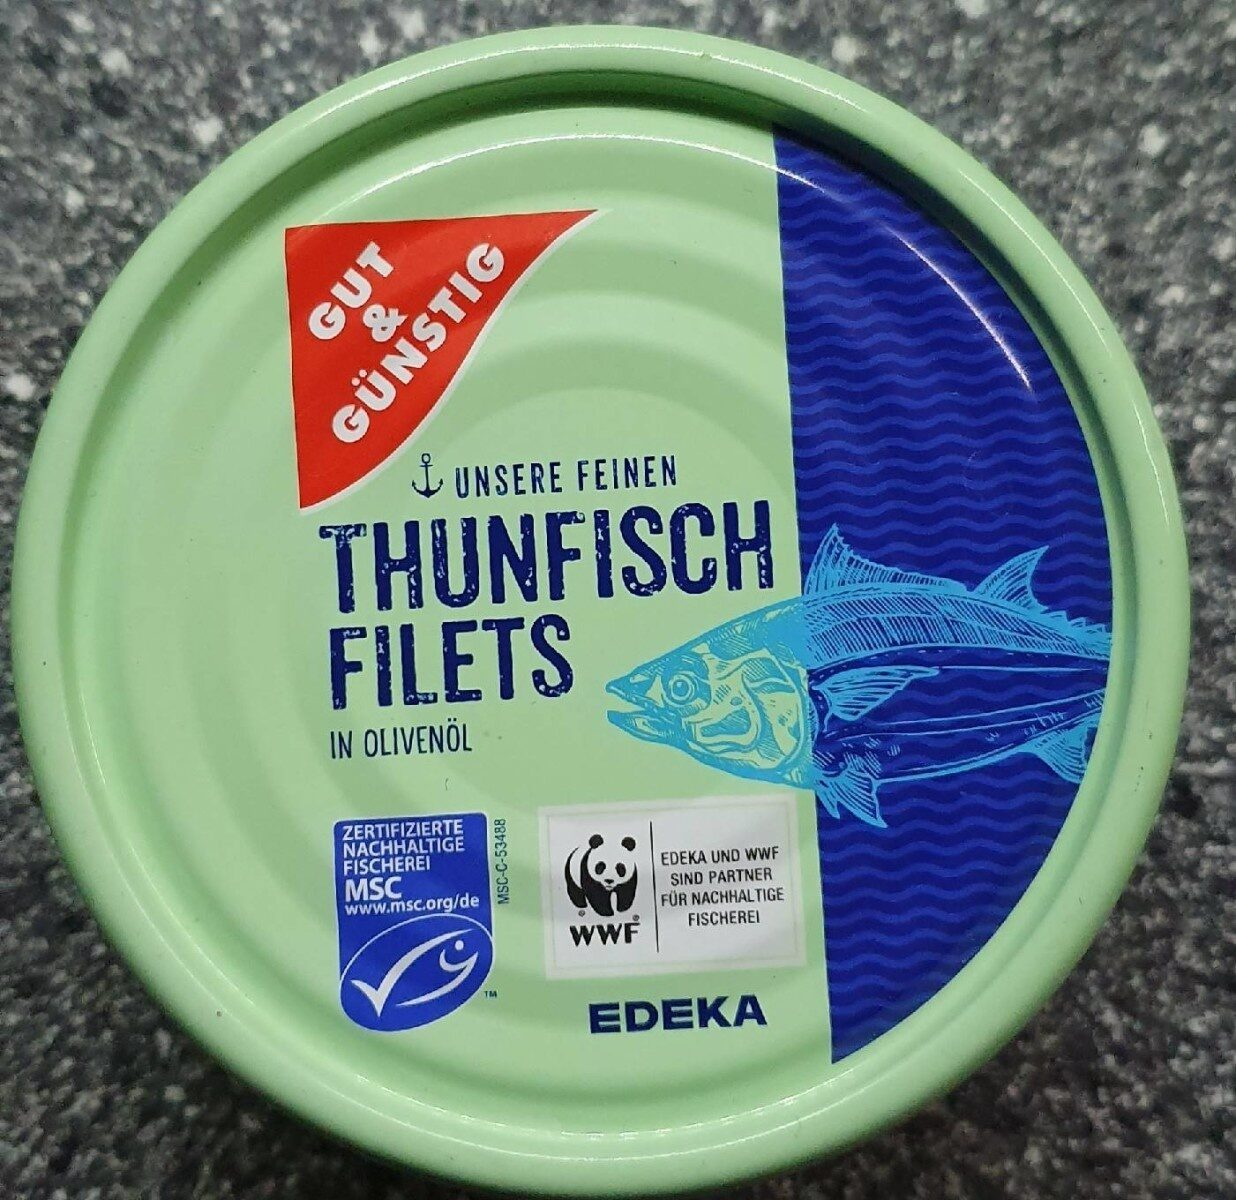 Thunfisch Filets Edeka - Produkt - de